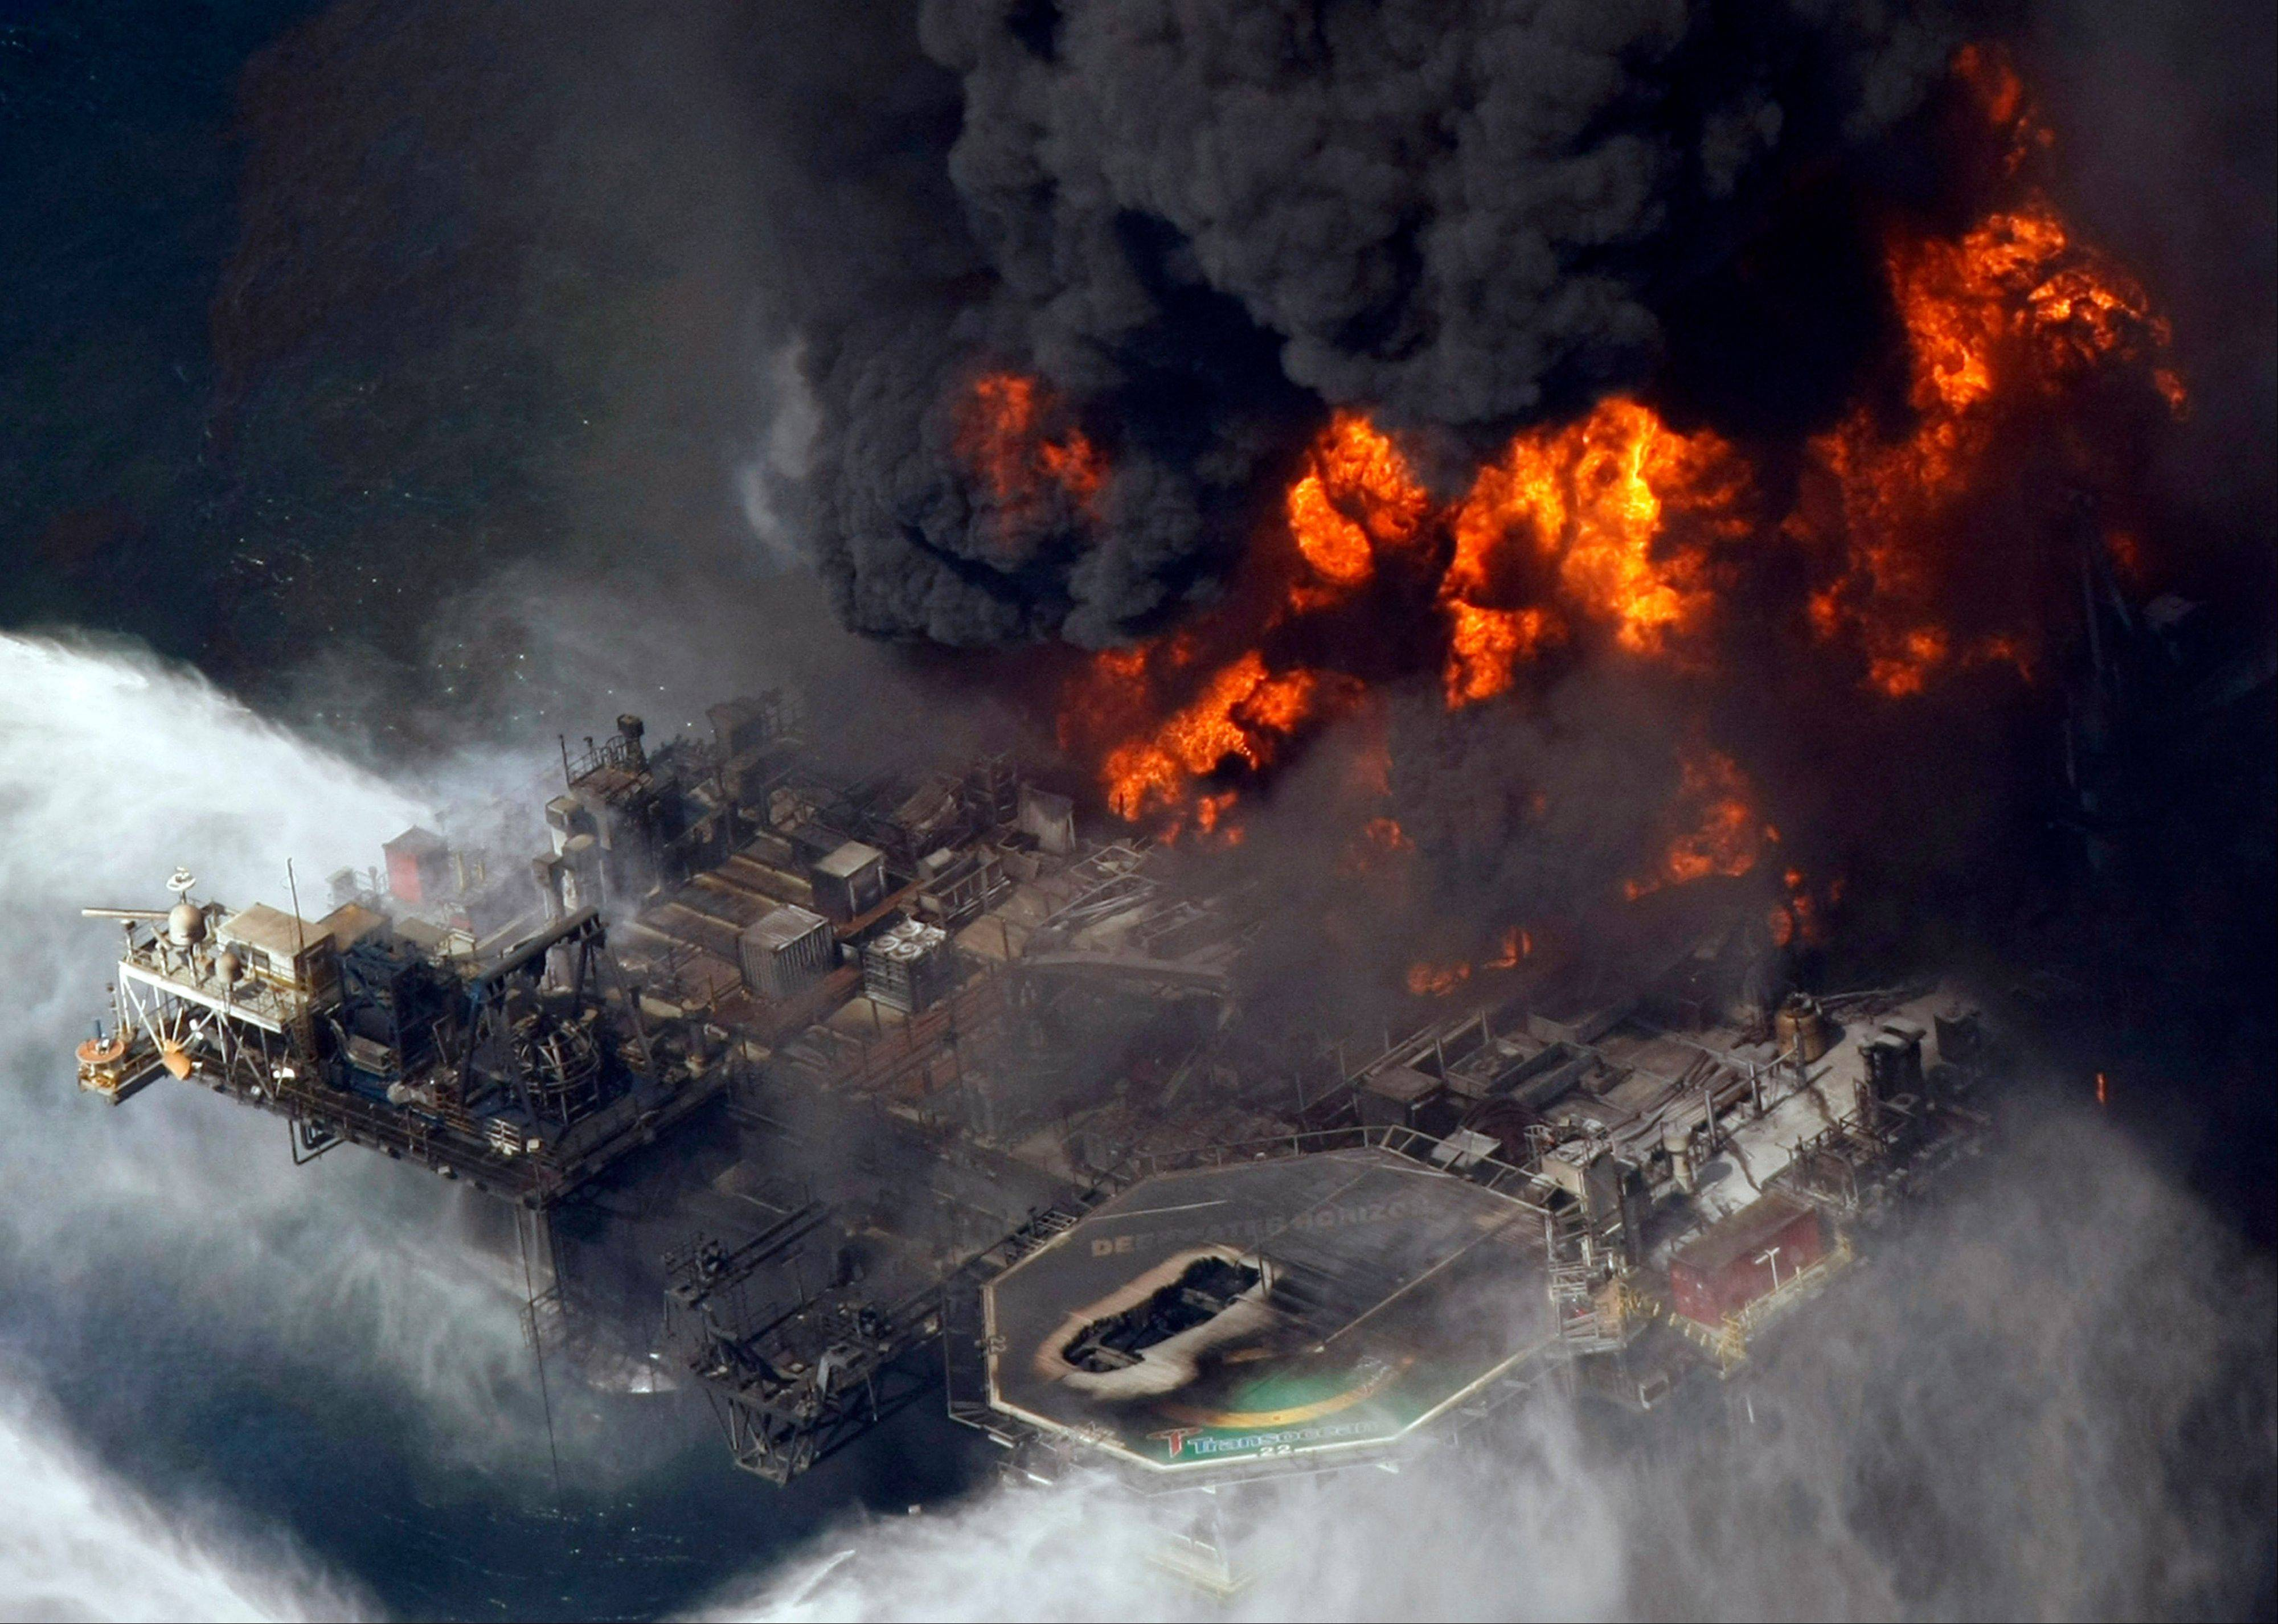 The Justice Department has reached a $1.4 billion settlement with Transocean Ltd., the owner of the drilling rig that sank after an explosion killed 11 workers and spawned the massive 2010 oil spill in the gulf. On Thursday, Jan. 3, 2013, two people with knowledge of the negotiations say Switzerland-based Transocean would pay the money to resolve the department's civil and criminal probe of the company's role in the Deepwater Horizon disaster.